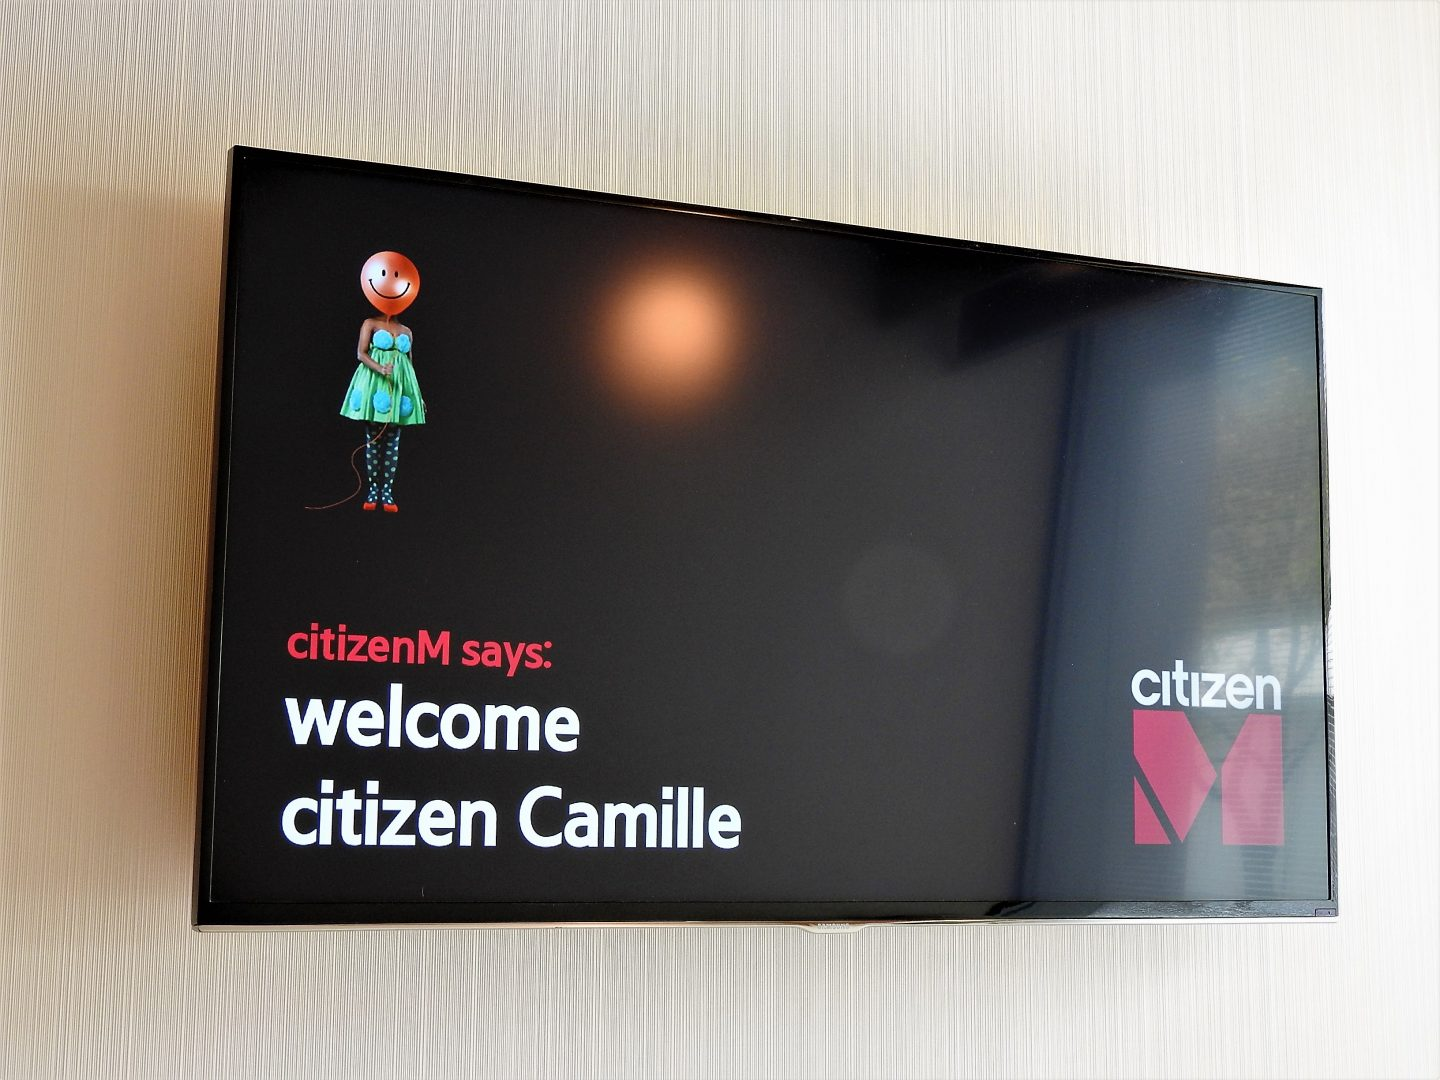 camille welcome citizenm amsterdam